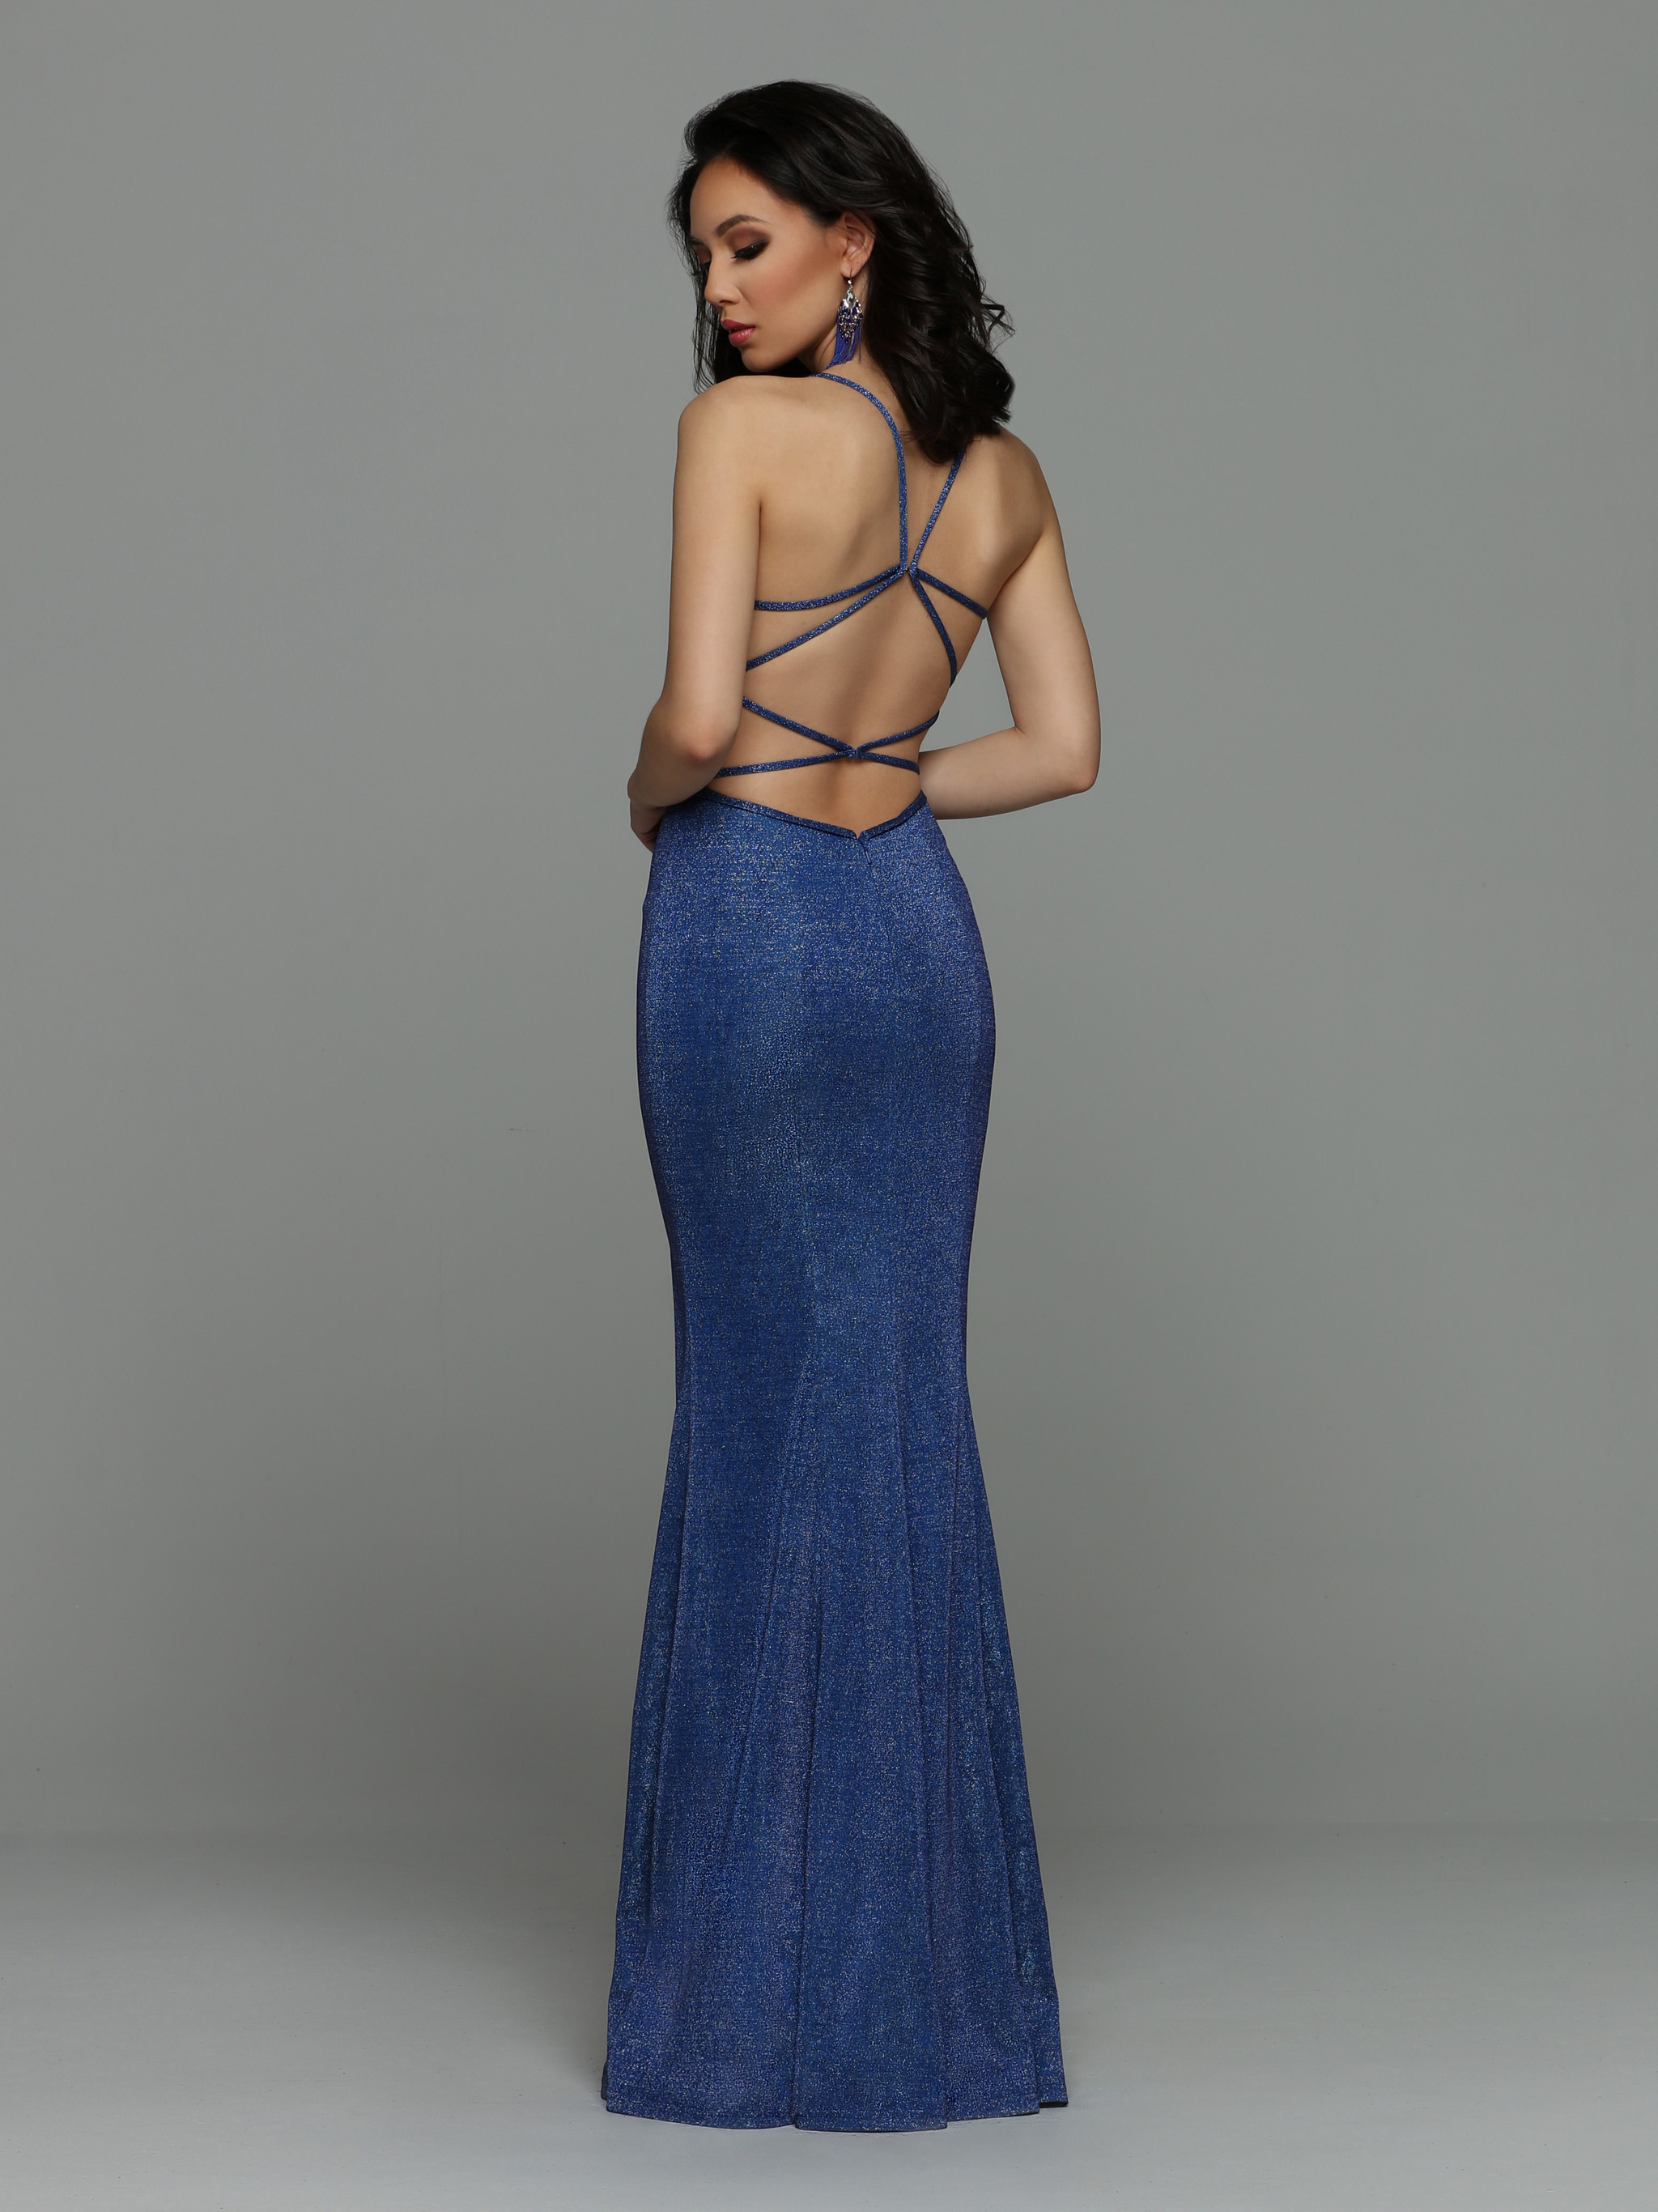 Image showing back view of style #71955